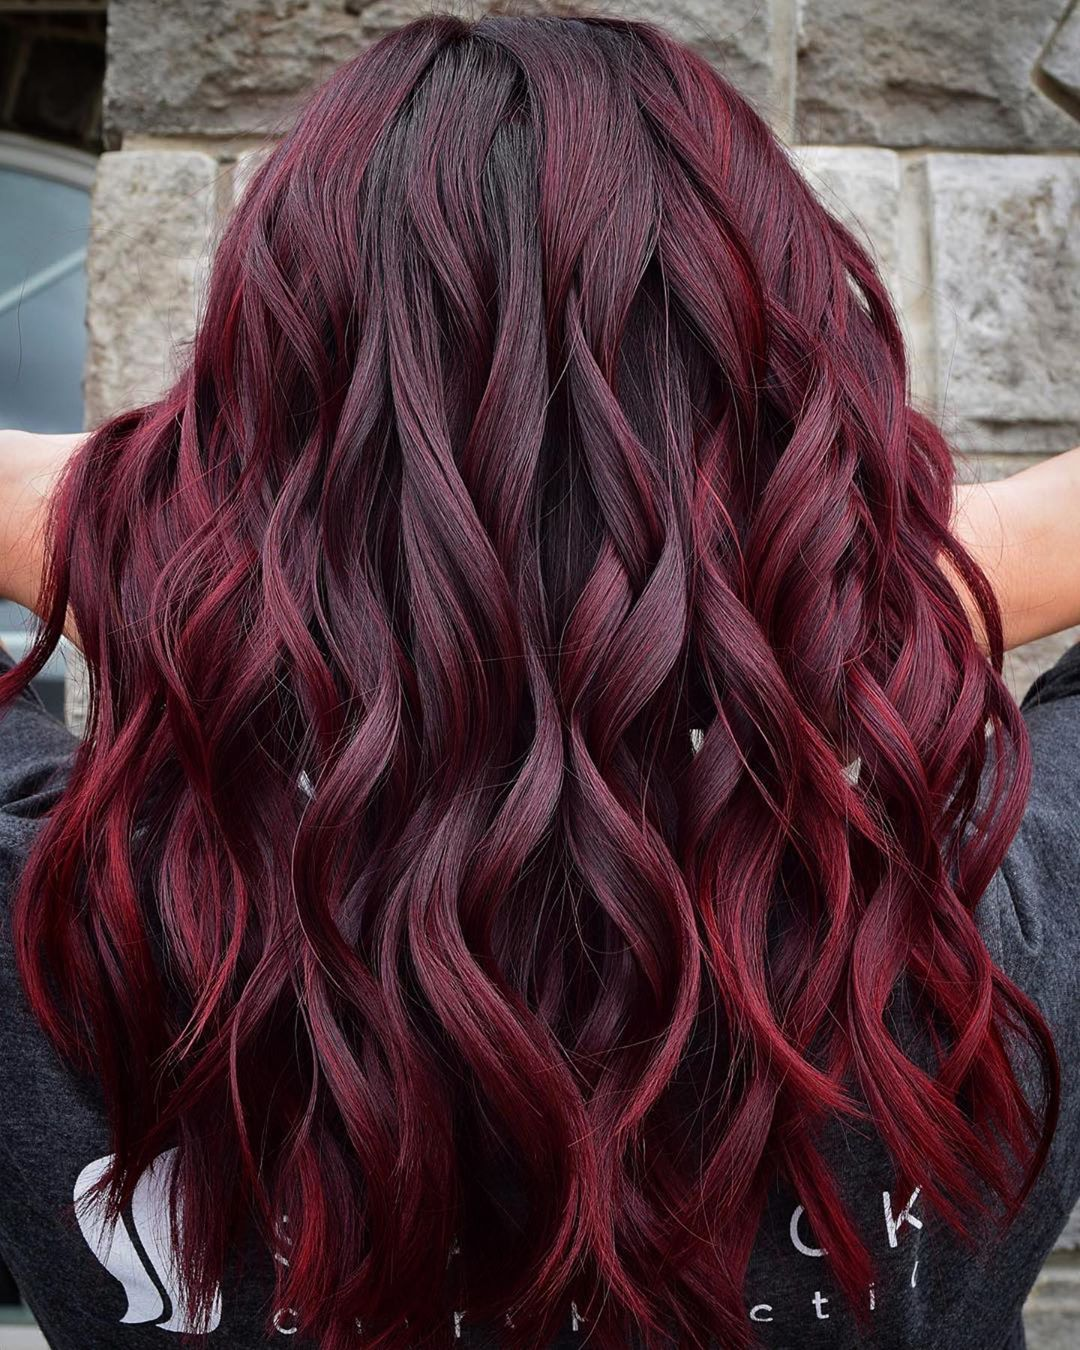 11 New Red Hair Ideas & Red Color Trends for 11 - Hair Adviser